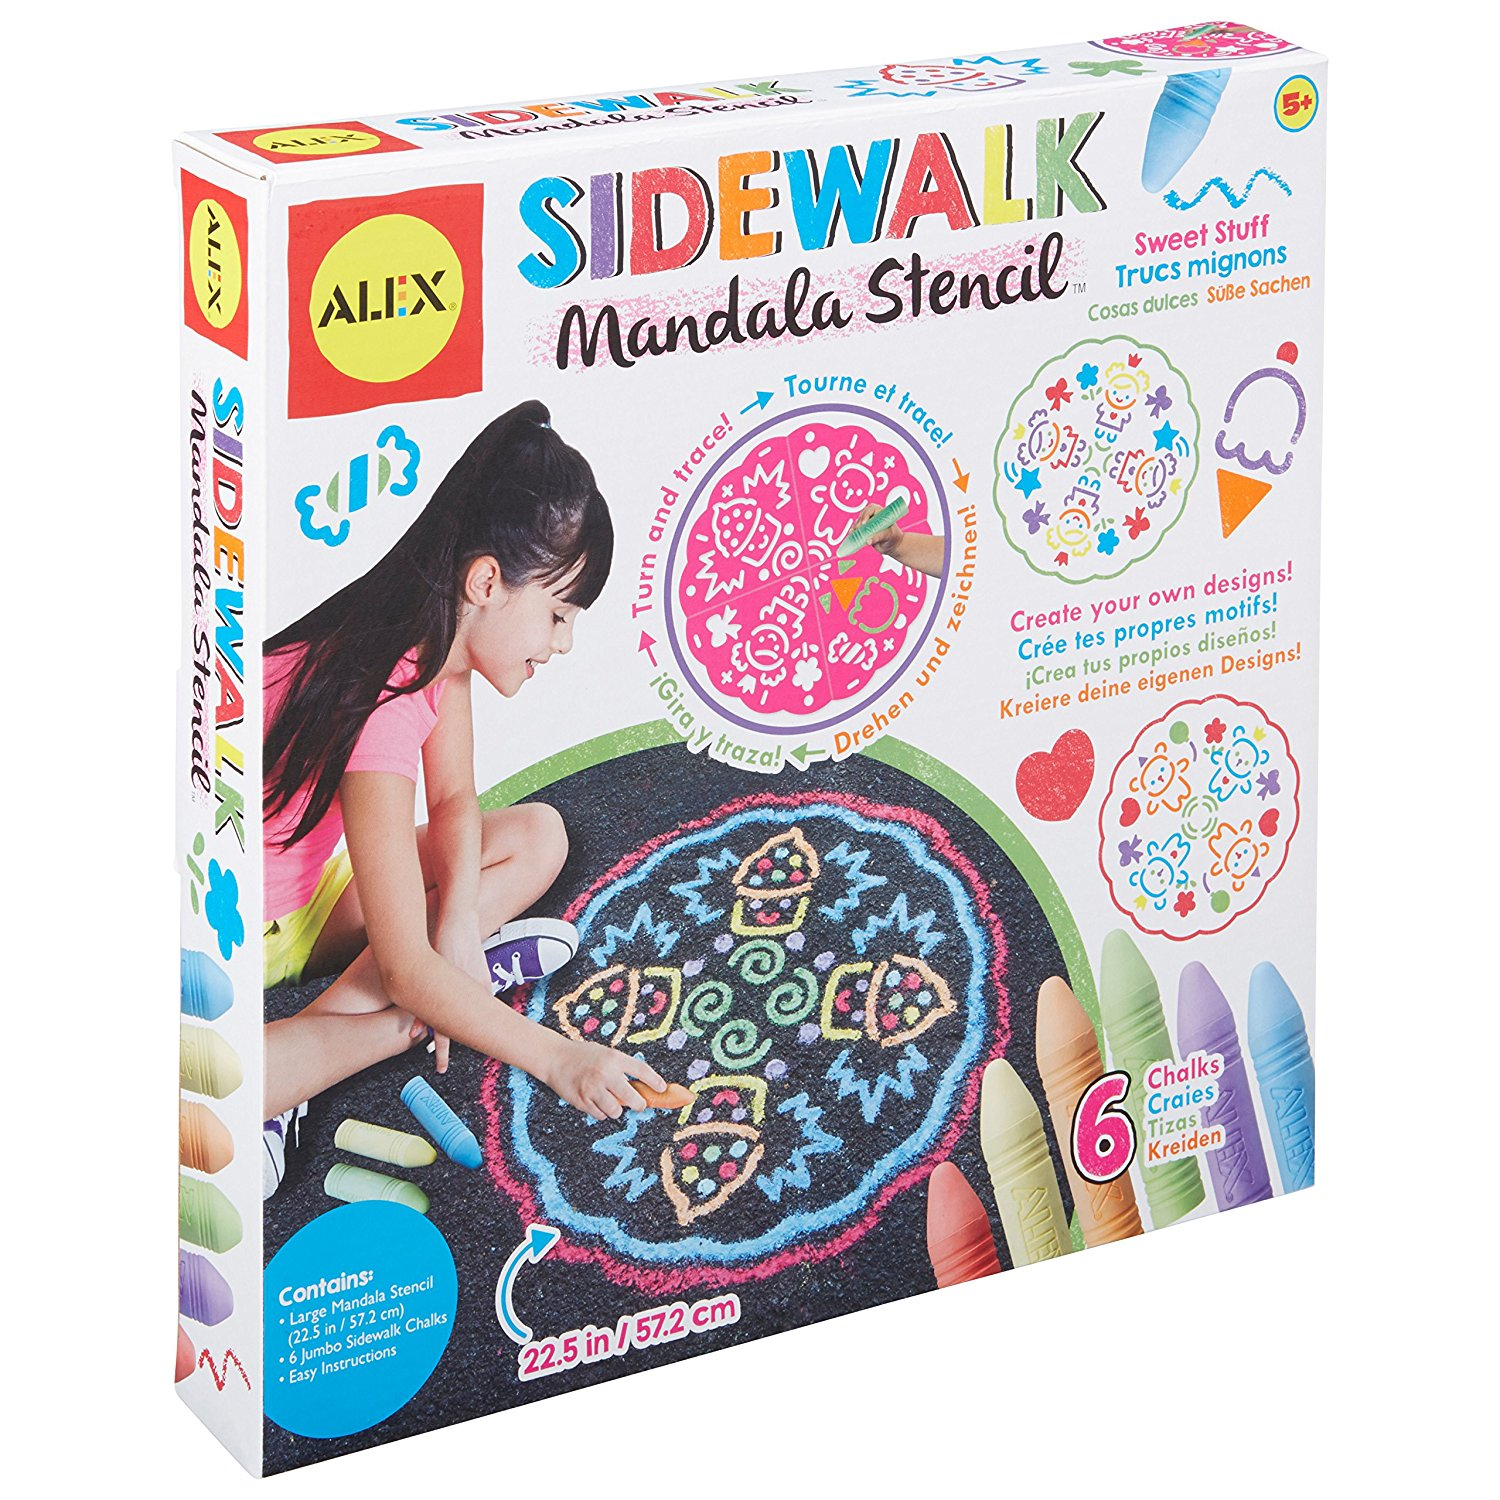 ALEX Toys Artist Studio Sidewalk Mandala on Sale for Only $7.58